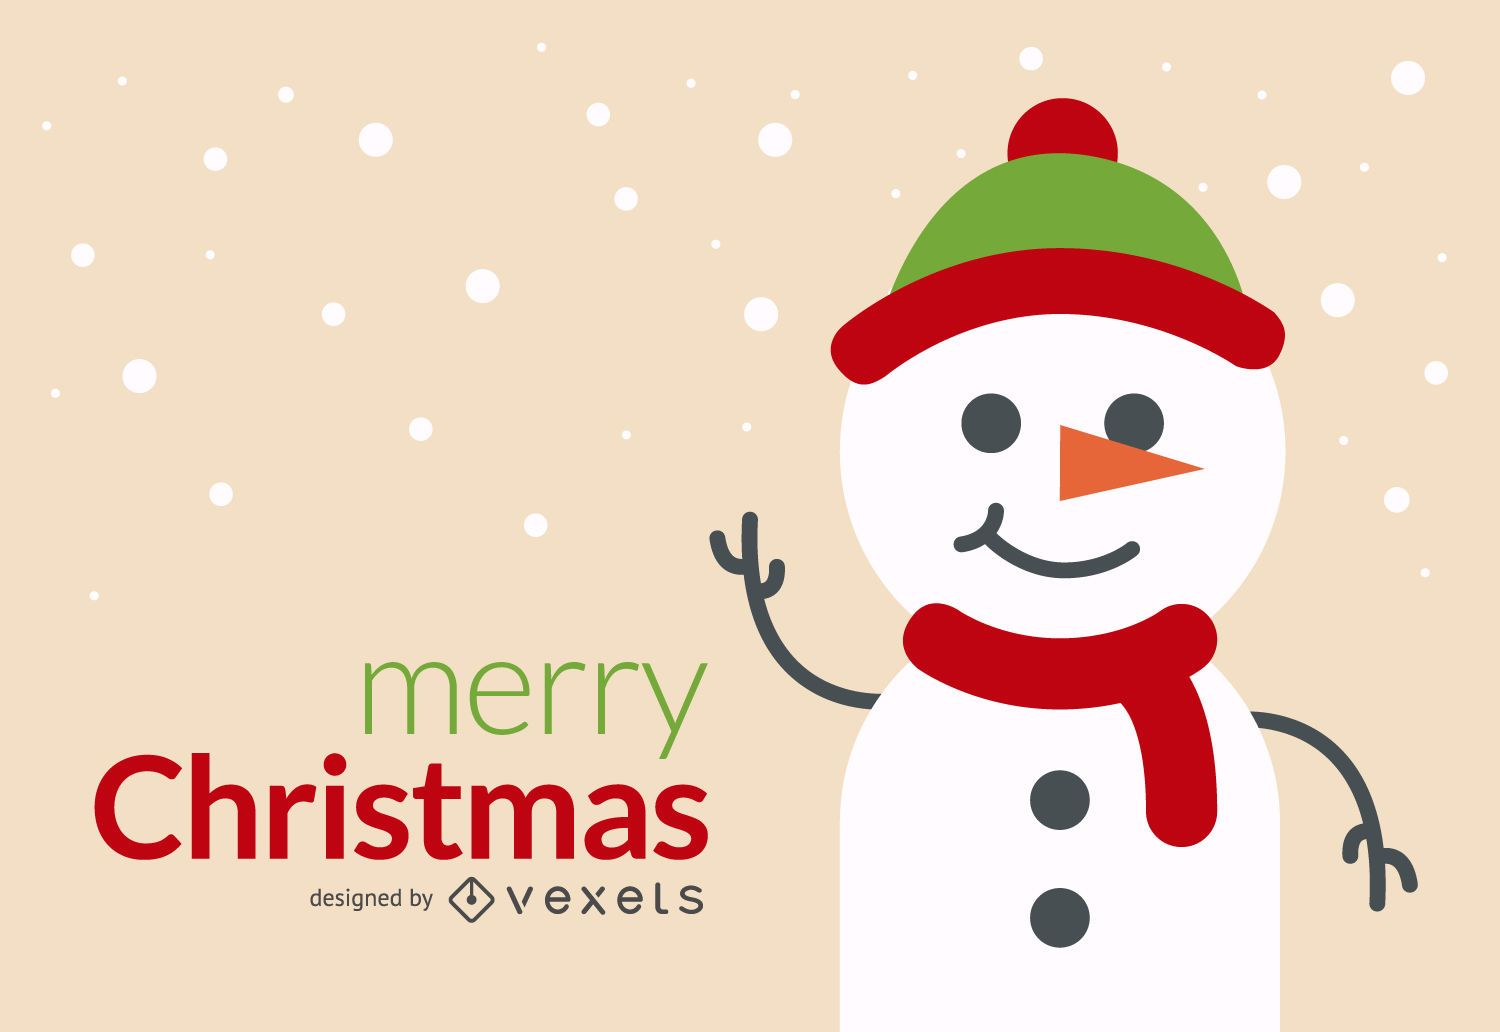 christmas snowman card design download large image 1500x1032px license image user - Snowman Christmas Cards